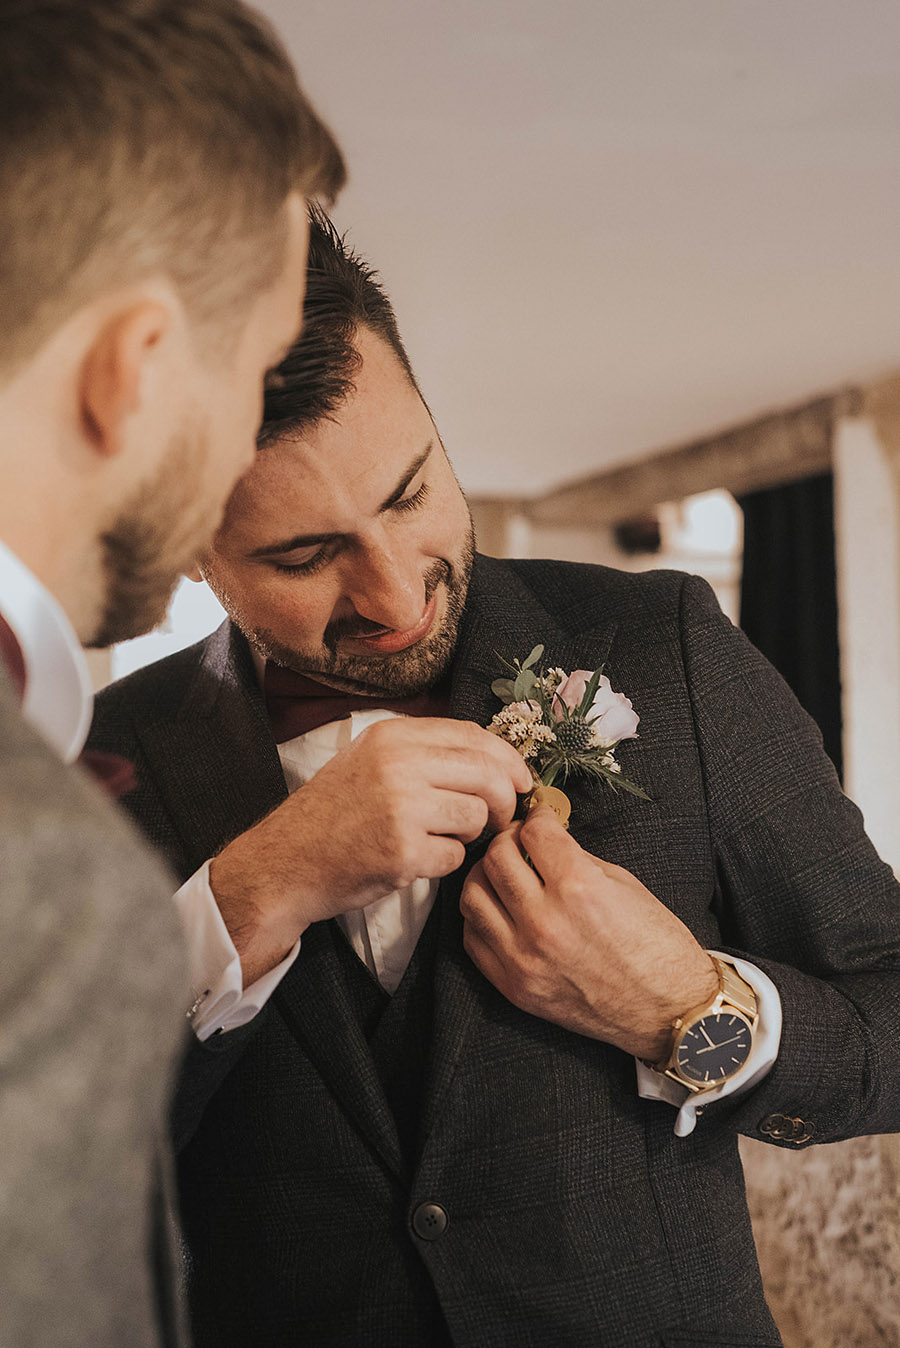 Kath & Adam's creative, DIY wedding at Wyresdale park, with Love Gets Sweeter and Claire Basiuk Photography (19)